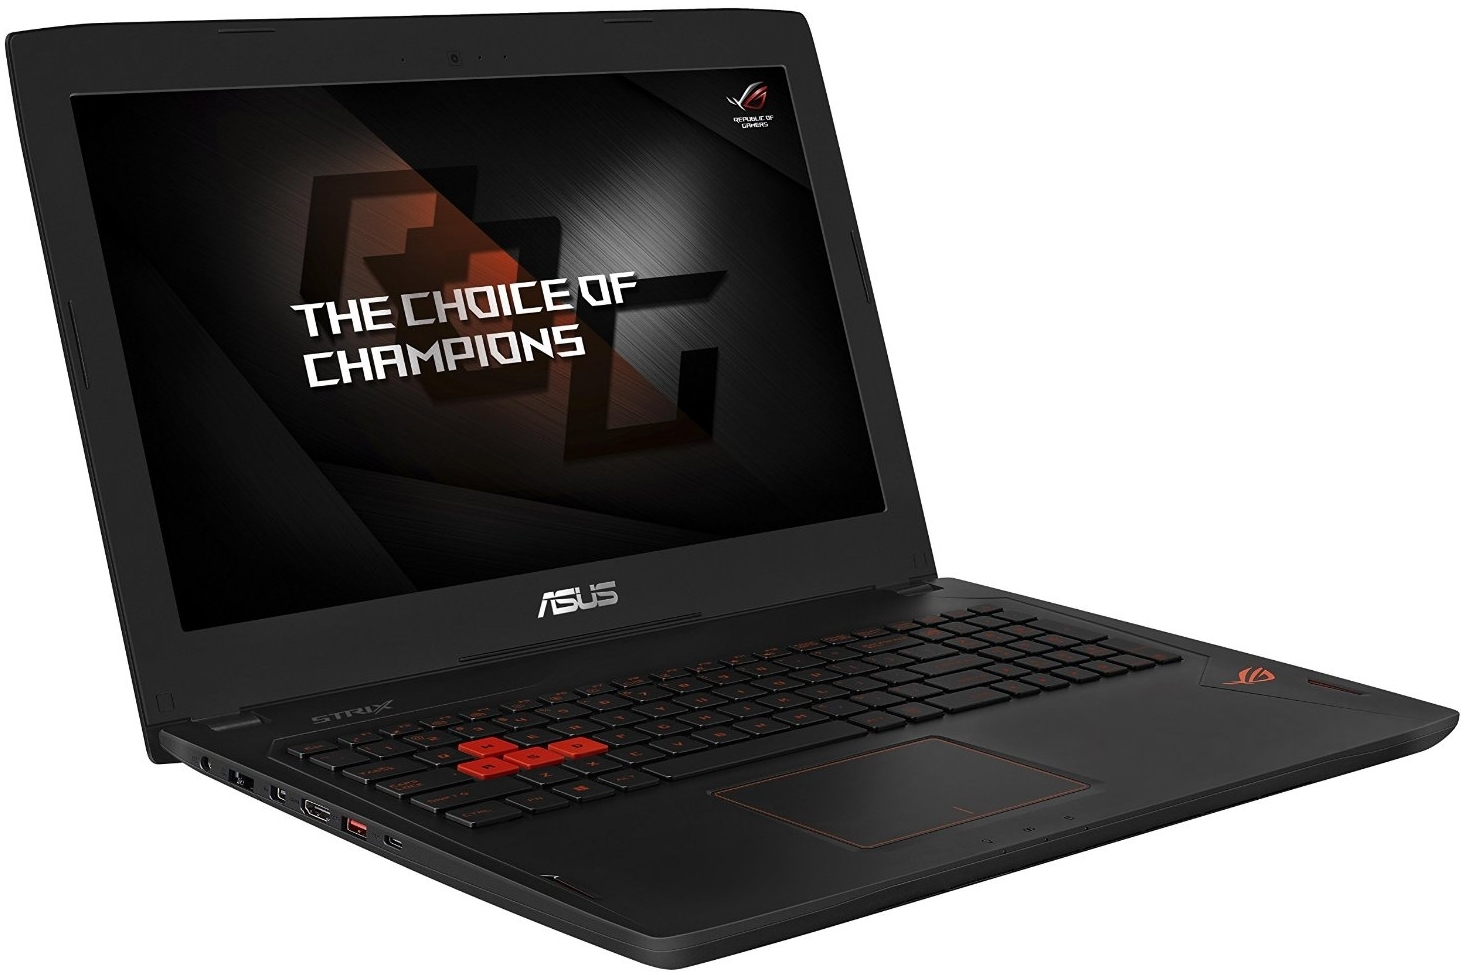 15.6quot; Asus ROG Strix GTX 970M 3GB Gaming Laptop  at Mighty Ape NZ